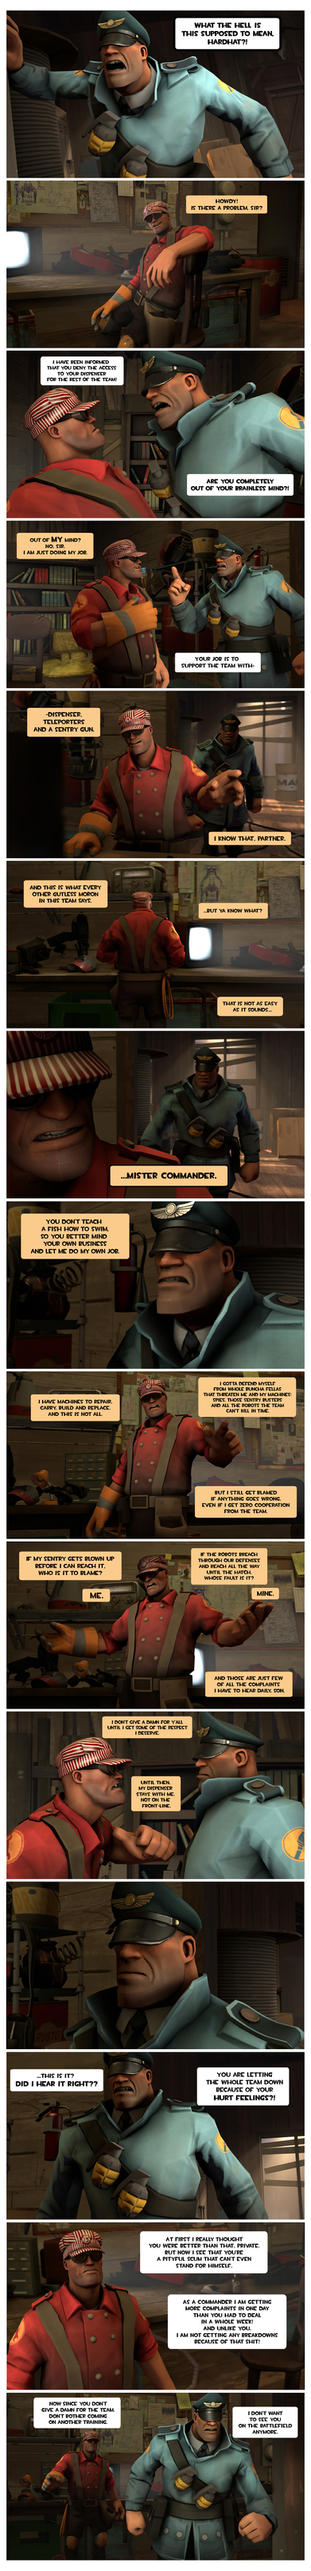 Strict Soldier's guide for MvM: Engineer (Part 1) by Menaria